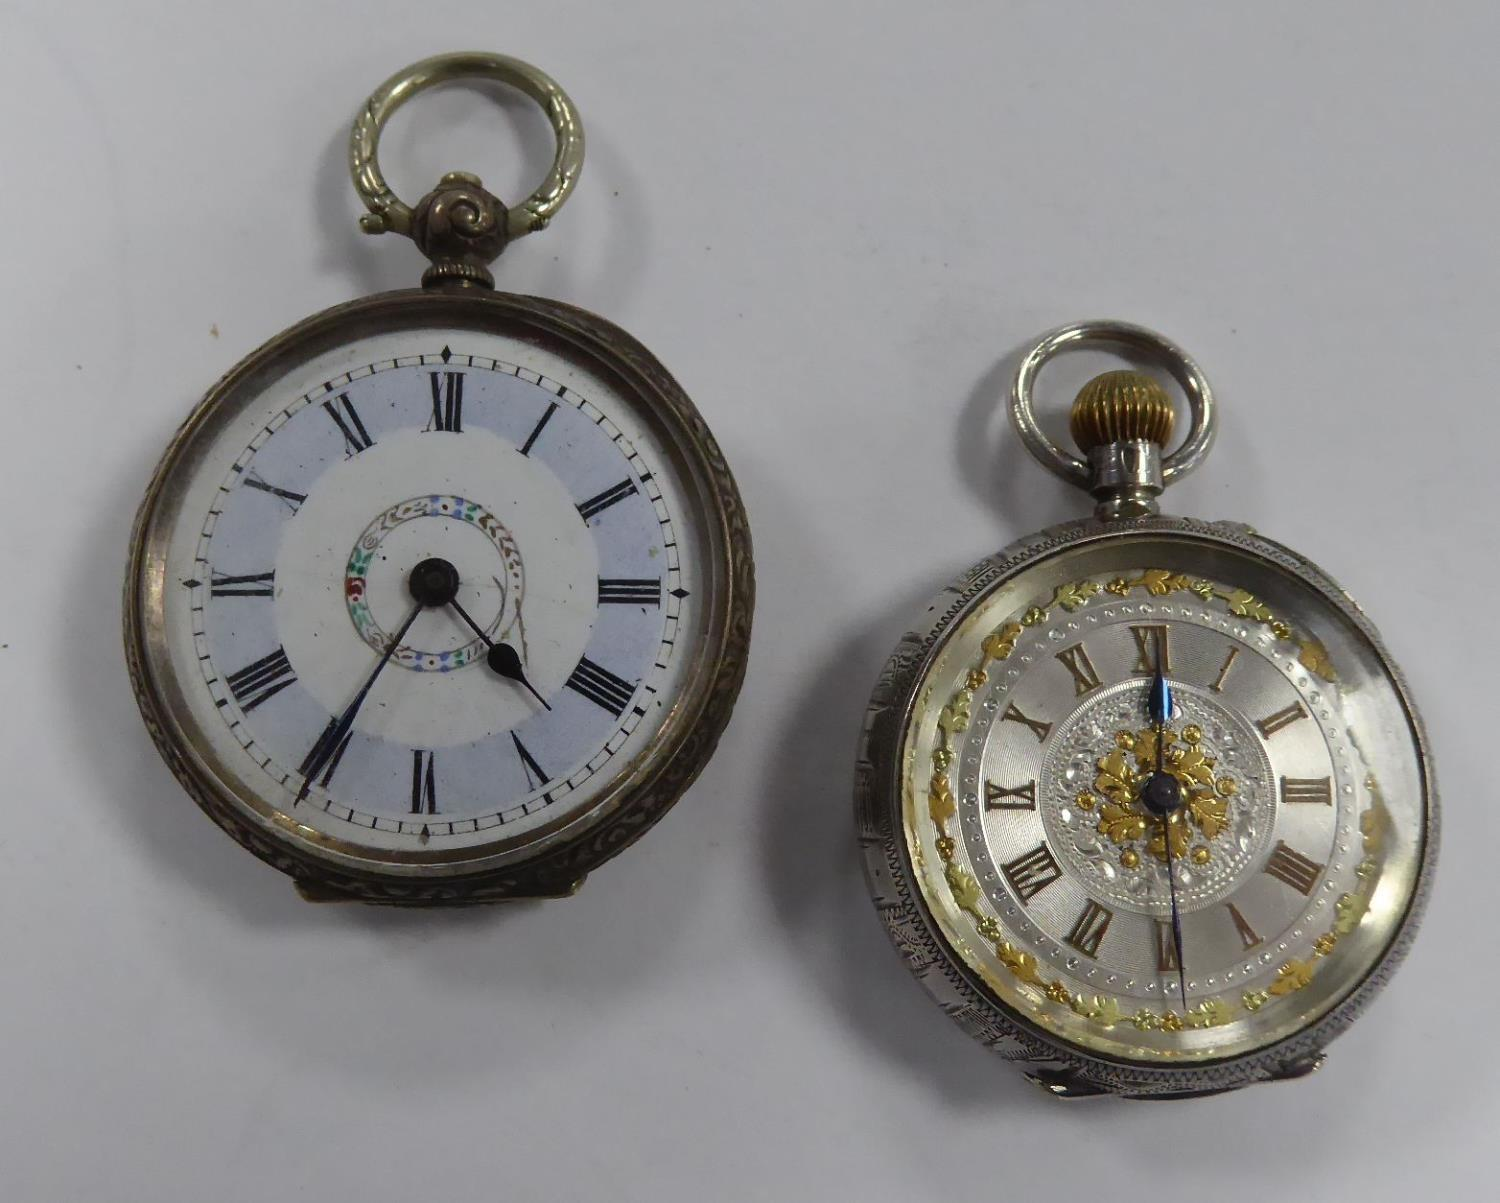 Lot 40 - TWO LADIES OPEN FACE POCKET WATCHES One with a keyless movement, the circular shape dials with Roman